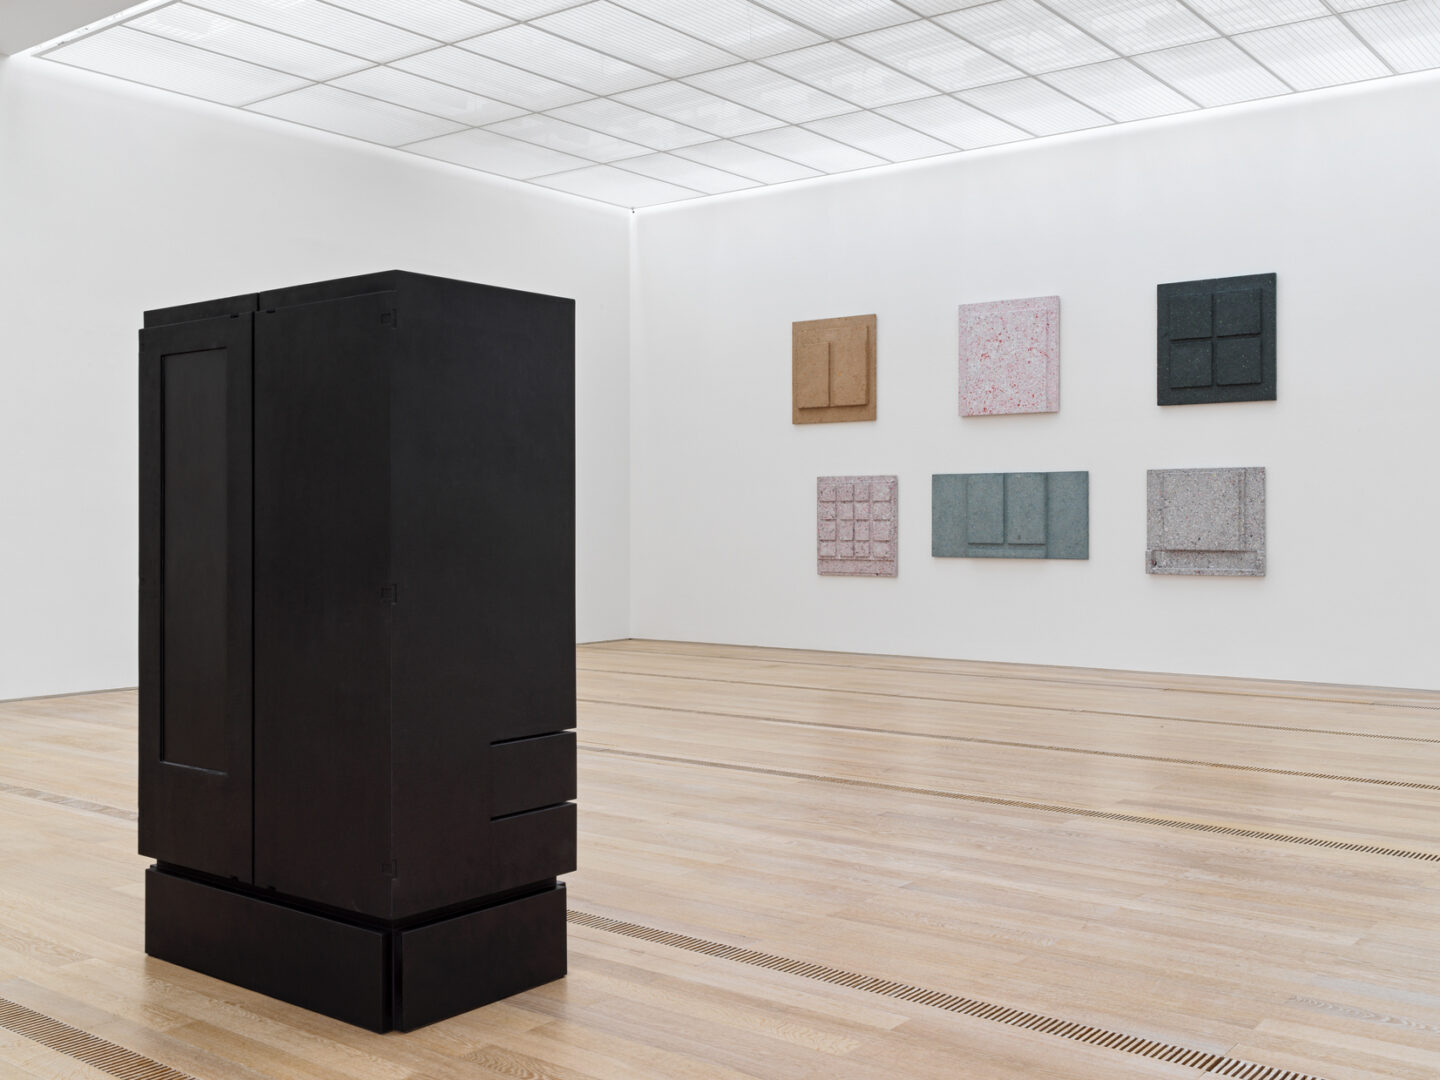 Exhibition View Groupshow «Resonating Spaces; view on Rachel Whiteread» at Fondation Beyeler, Riehen, 2019 / Photo: Stefan Altenburger / Courtesy: the artist and Fondation Beyeler